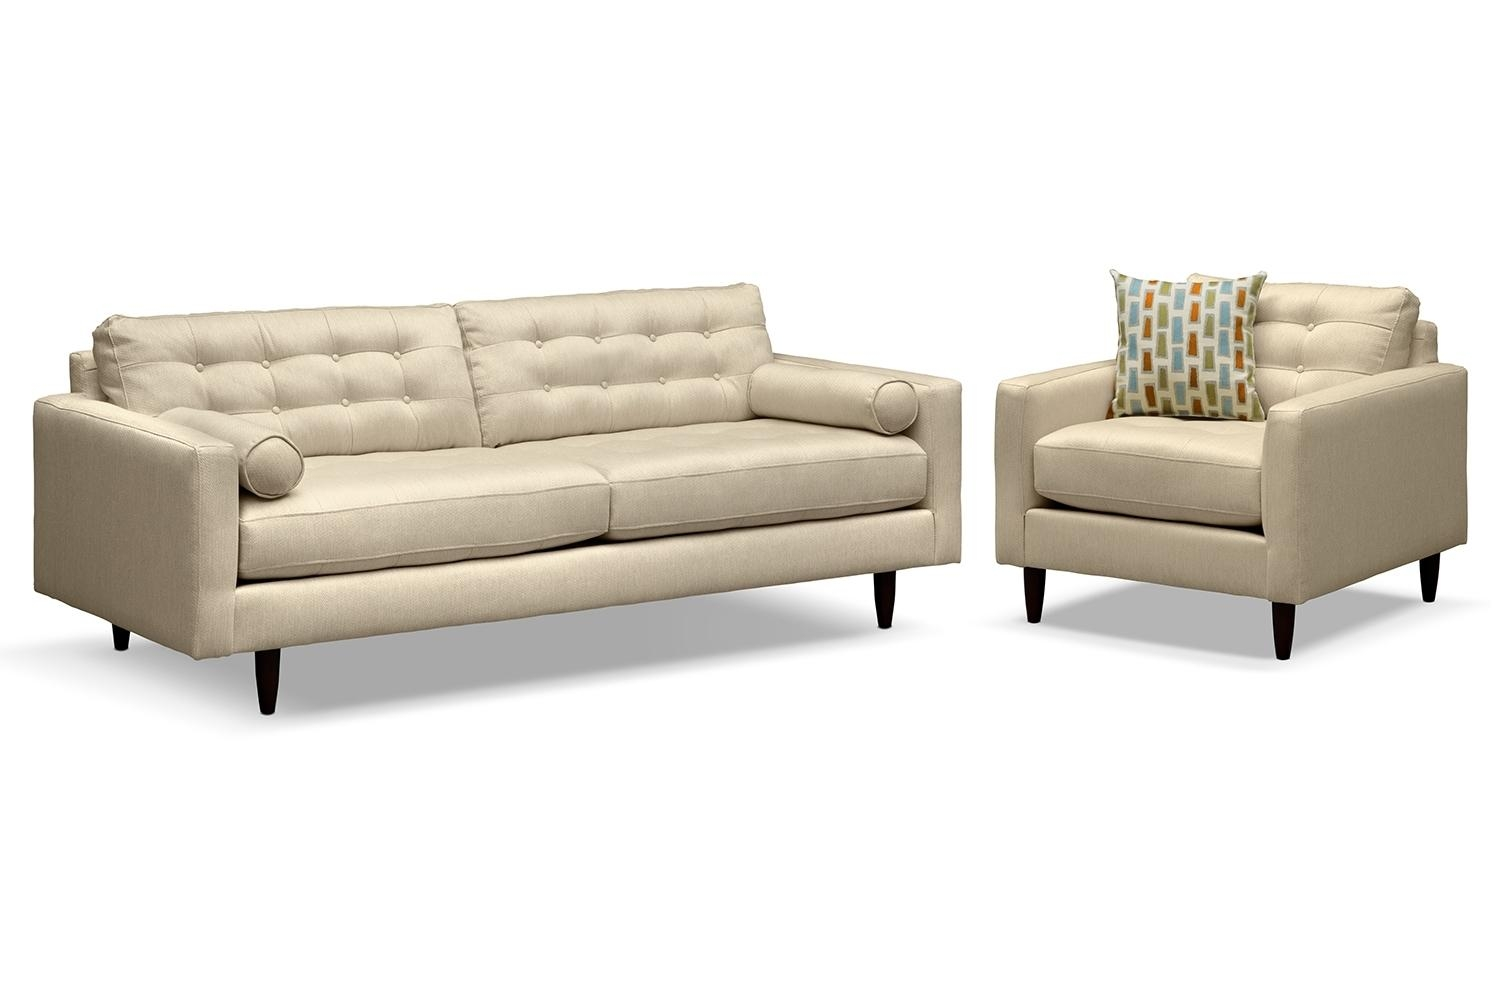 Furniture: Sectional Leather Sofas | Value City Furniture Outlet Pertaining To Value City Sofas (View 14 of 20)